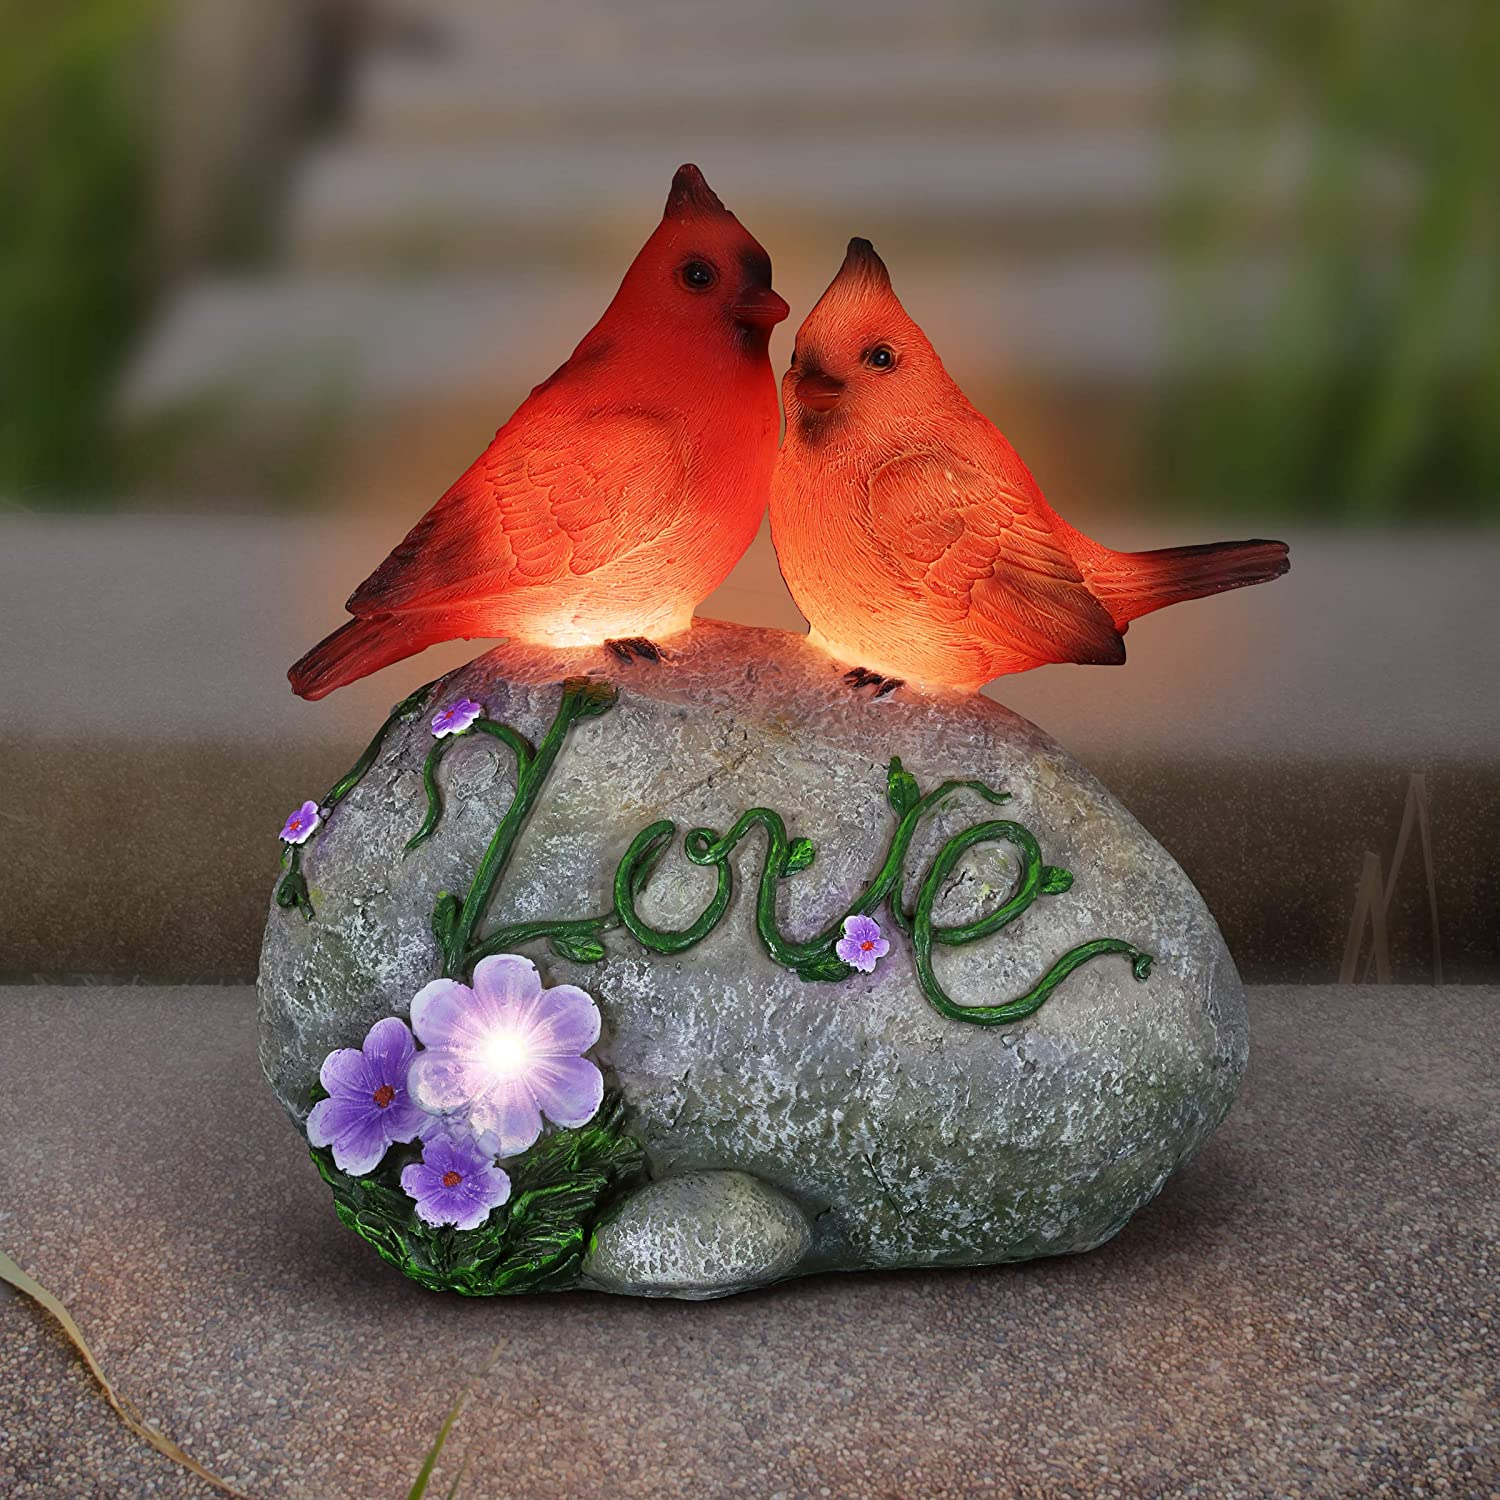 "Exhart Solar Cardinal Love Rock Statue w/LED Light Flower – Hand Painted Garden Art for Indoor & Outdoor Use - Durable Weather-Resistant Resin Bird Statues for Home & Garden Decor, (7.5"" x 4.5"" x 8"")"